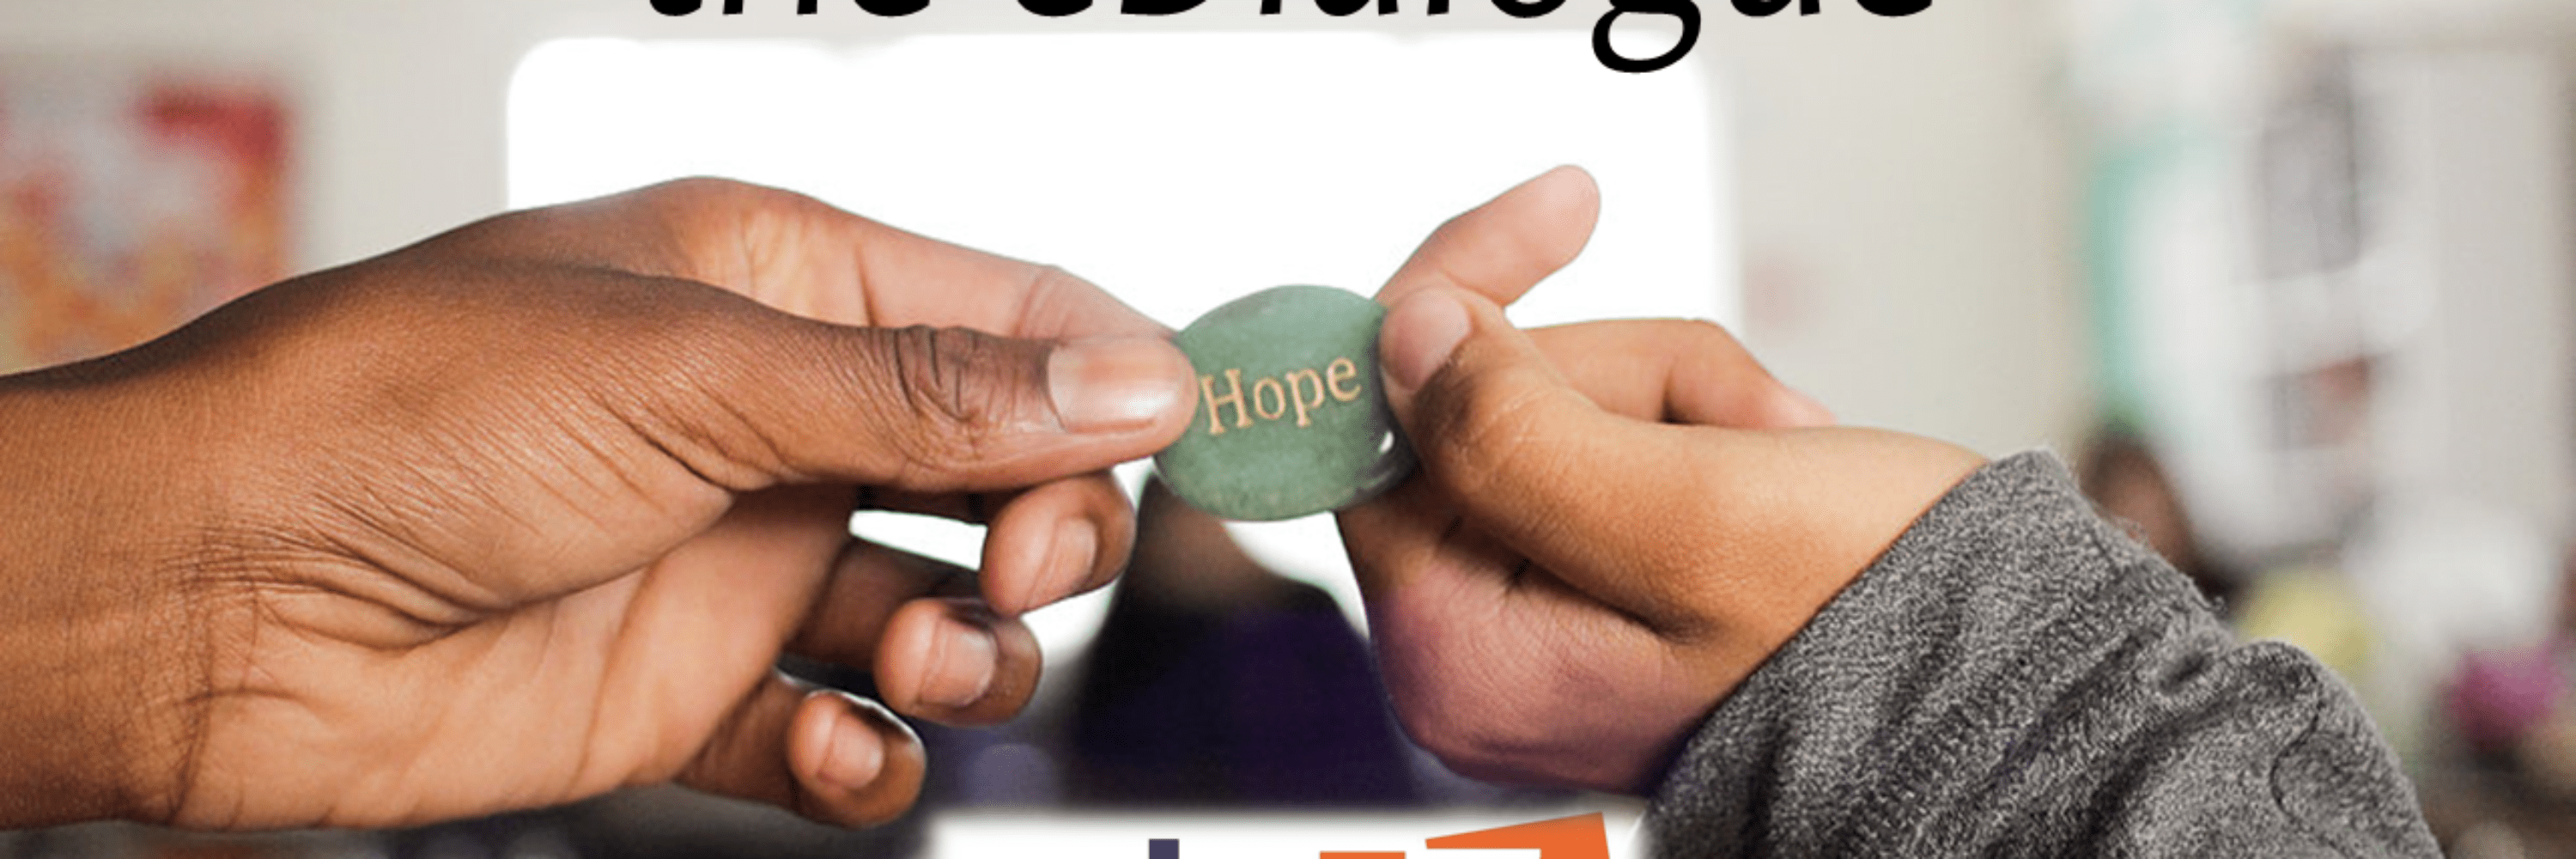 Sign up for the eDialogue, Make a Donation --and Pass the Hope!